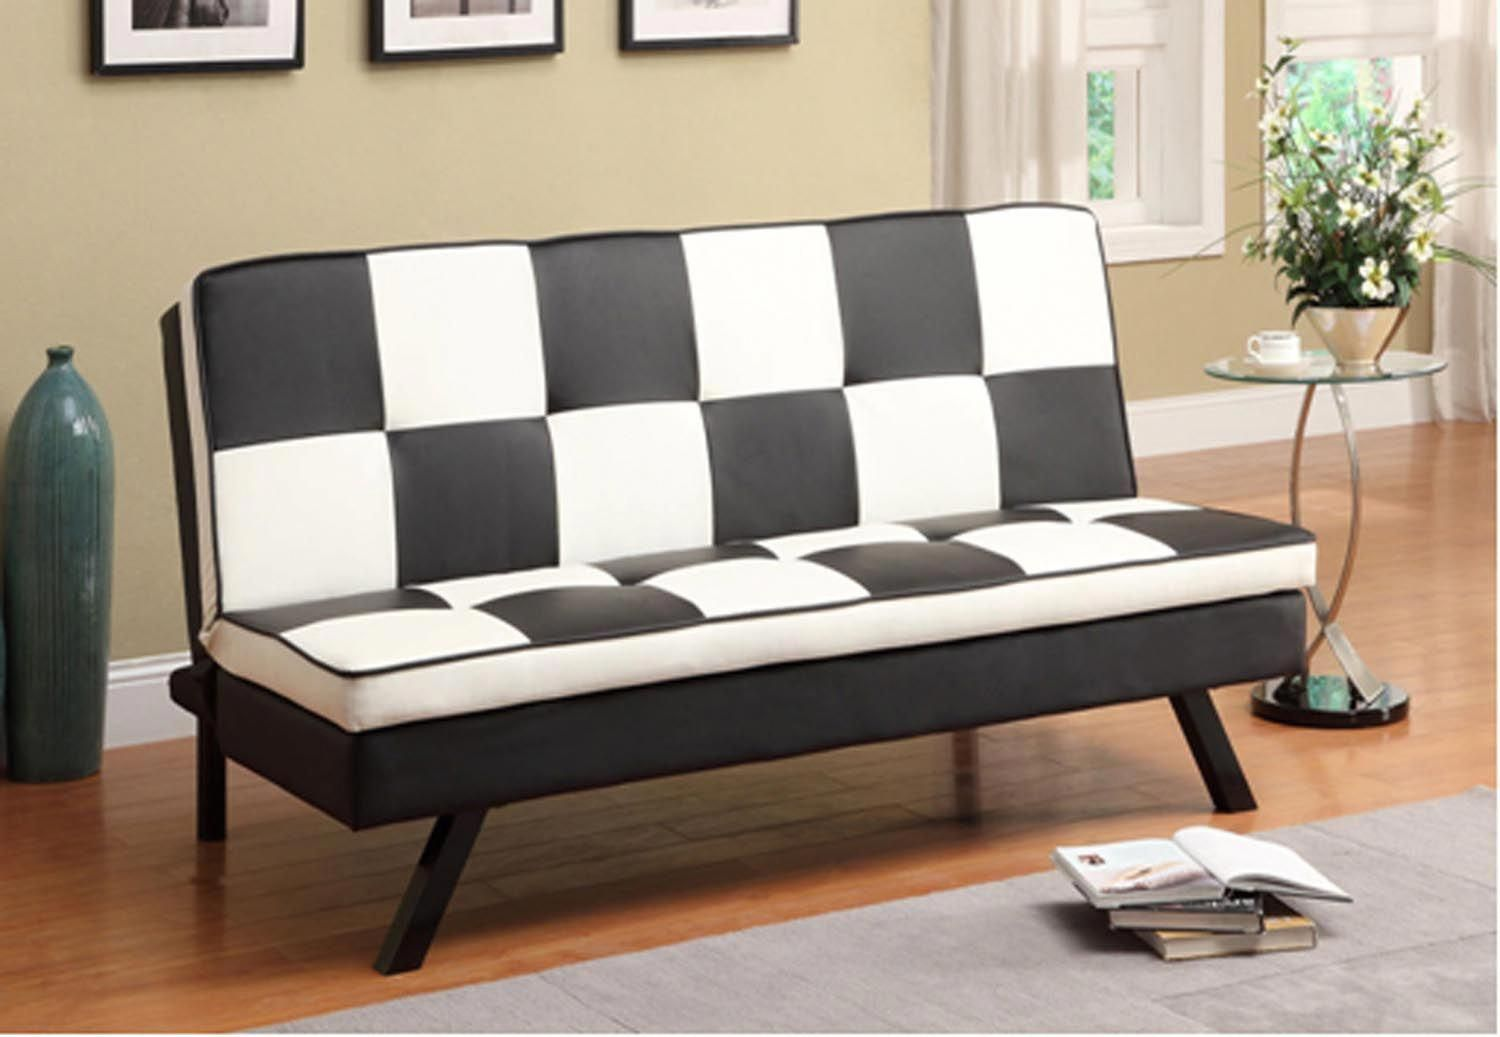 Furniture Clearance Center Headboards And Futons Clearancefurniture